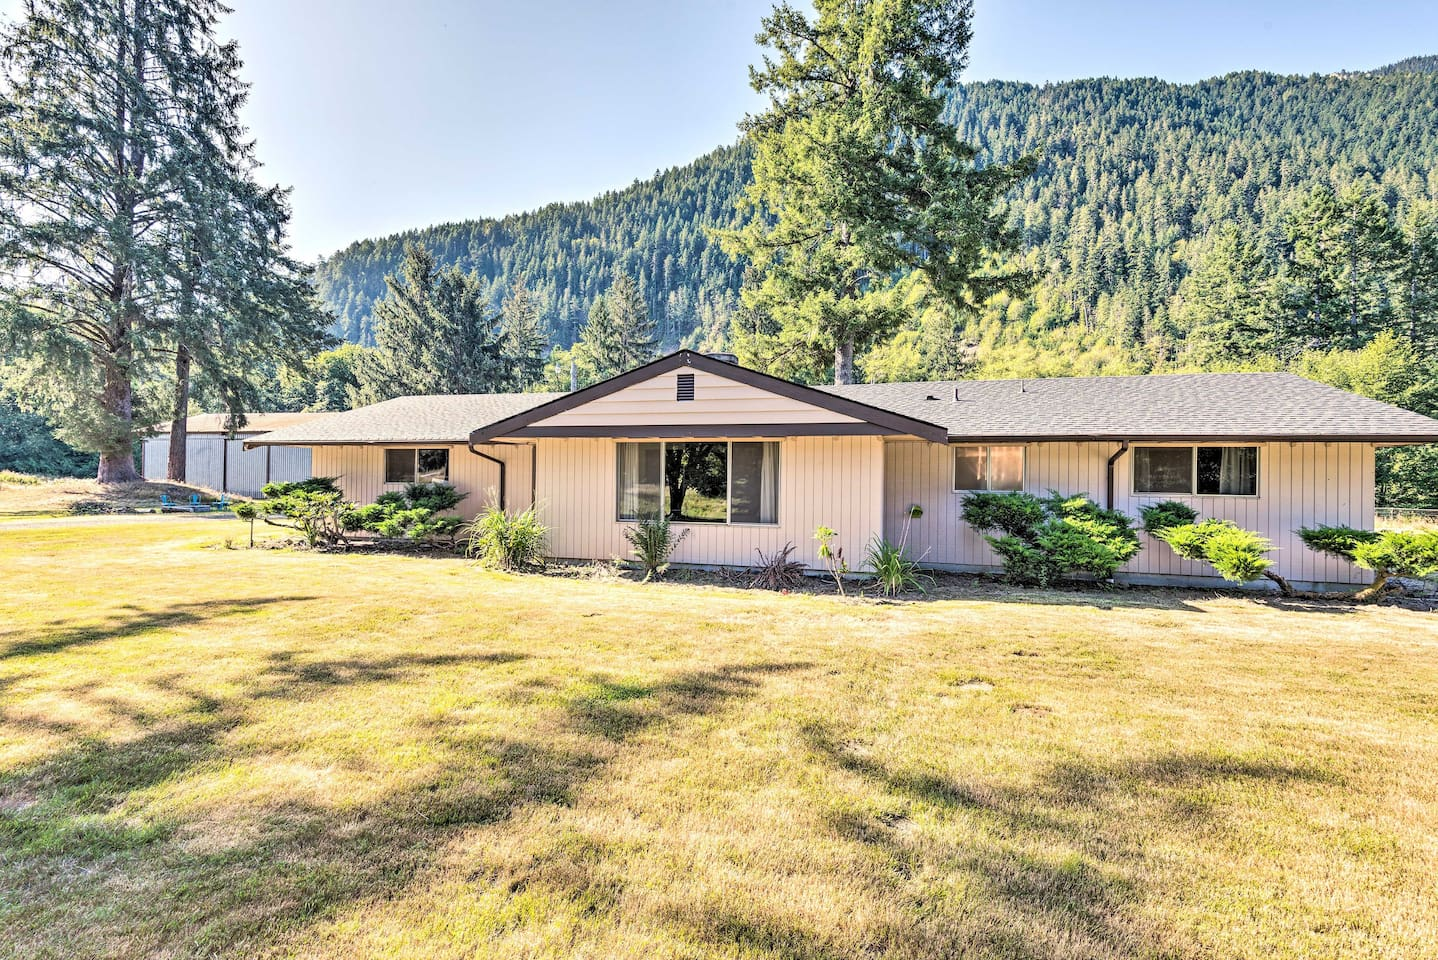 Escape to Port Angeles for a mountain side getaway at this vacation rental!